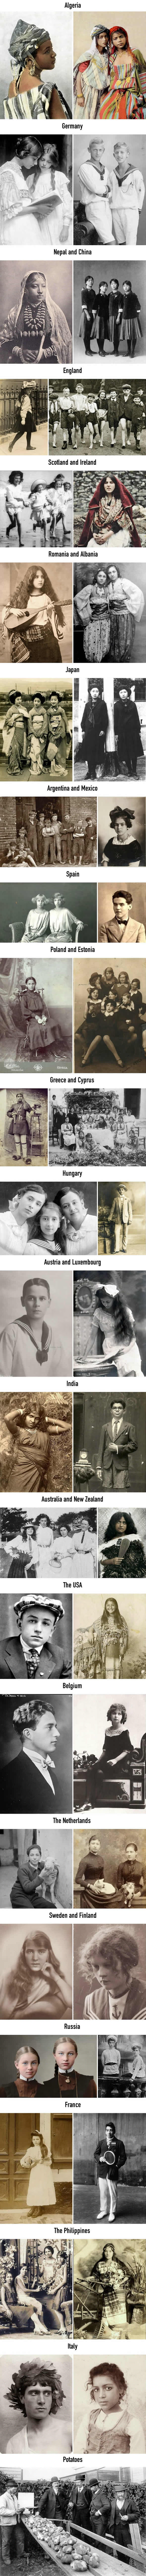 What young people looked like 100 years ago in different countries